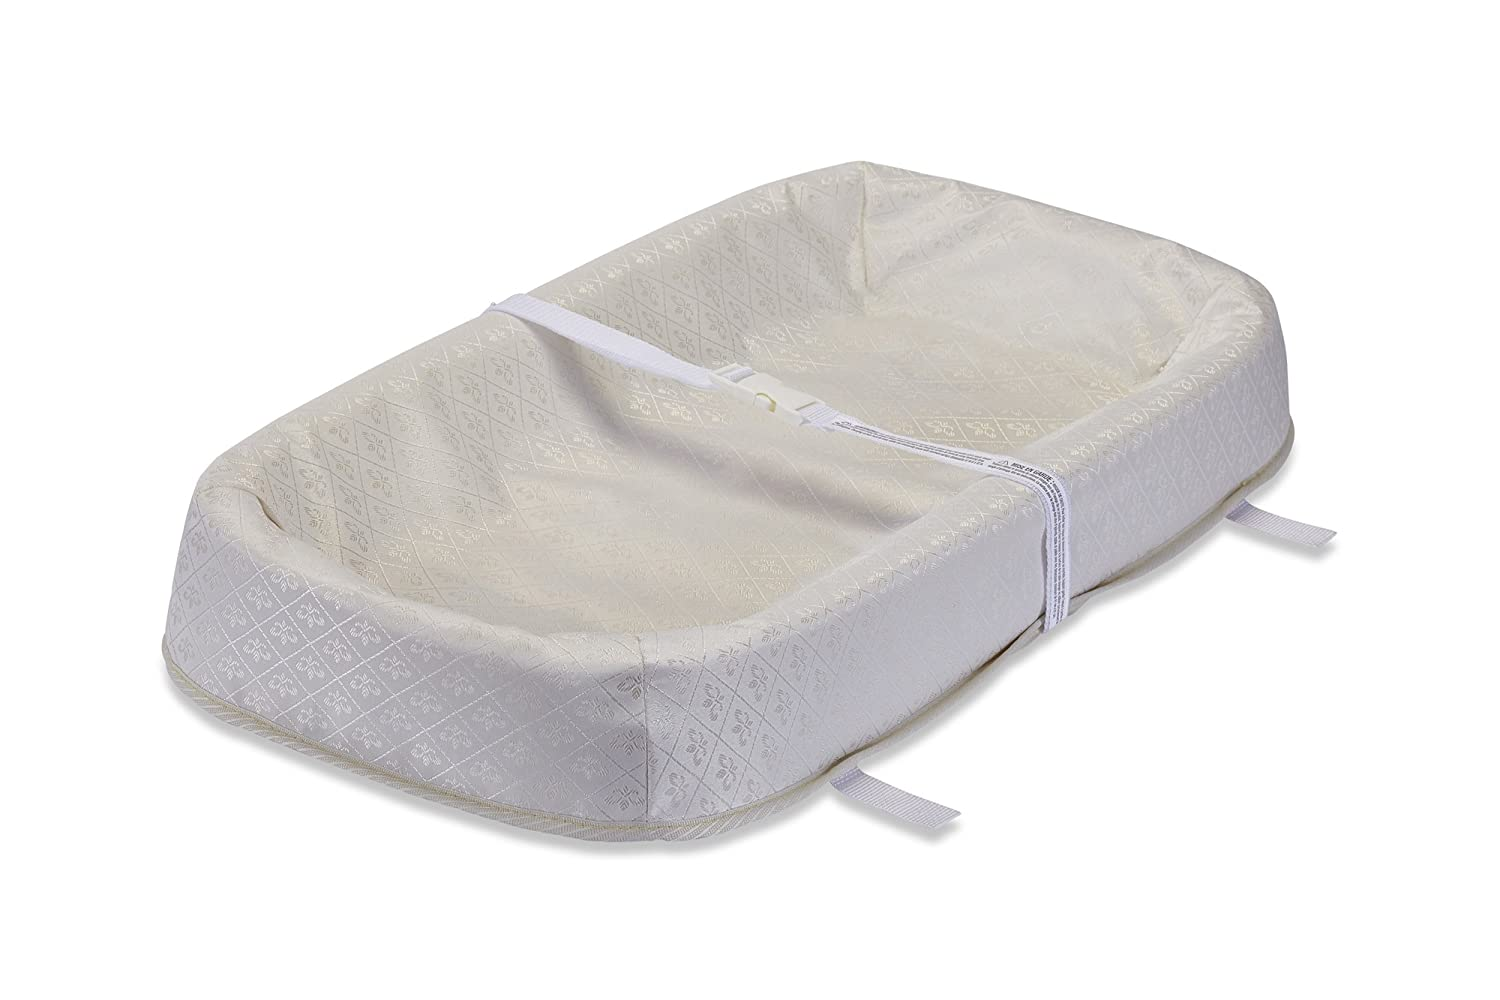 LA Baby 4 Sided Changing Pad with Organic Layer, 30' - Made in USA. Easy to Clean Waterproof Cover w/Non-Skid Bottom, Safety Strap, Fits All Standard Changing Tables for Best Infant Diaper Change P-3600-ORGJ-30